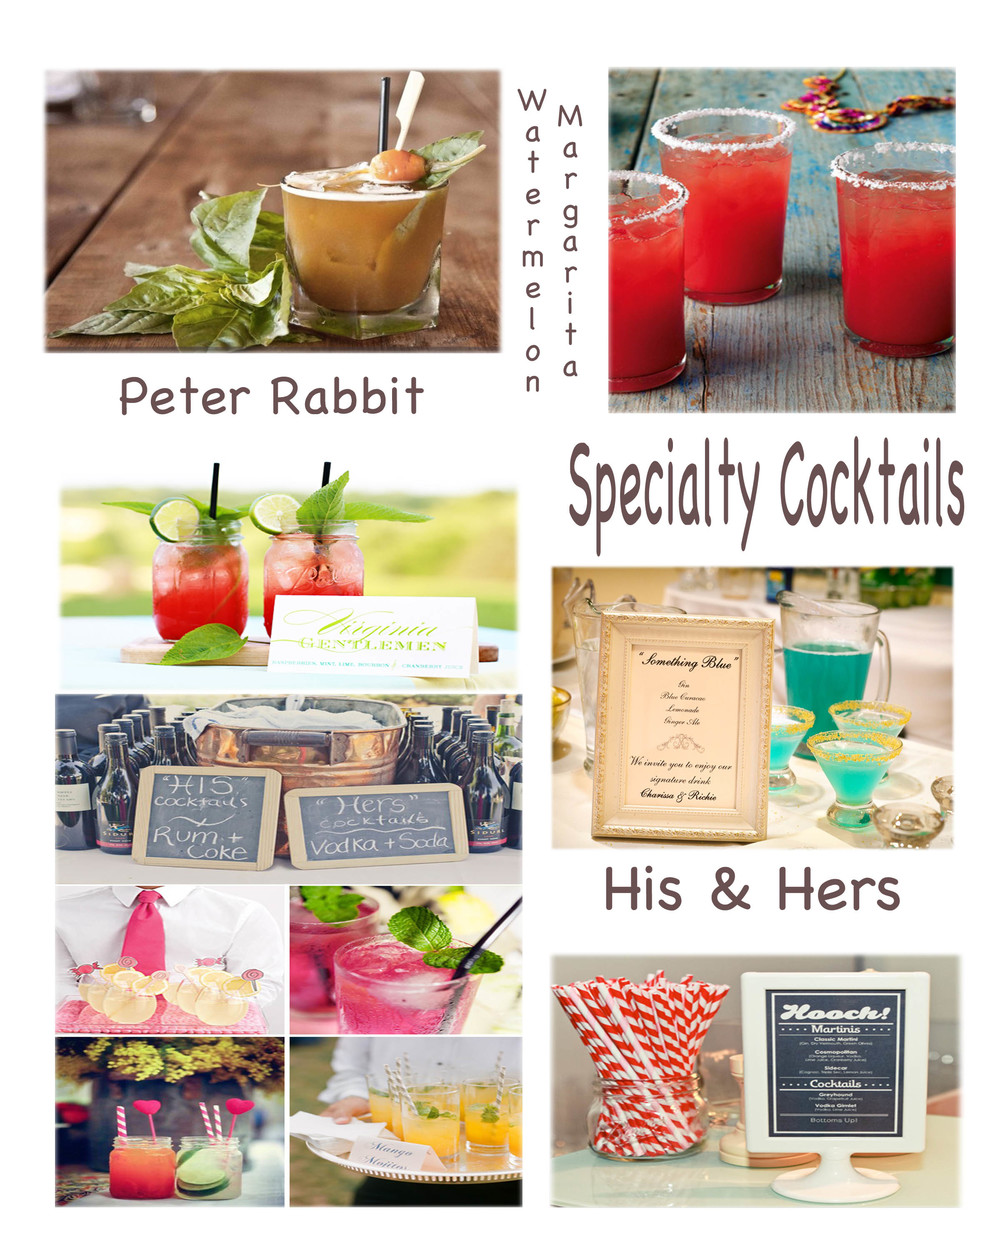 Peter Rabbit via  Snake Oil Mixology   Watermelon Margarita via  Martha Stewart   Virginia Gentleman via  Easton Events   Something Blue via  United with Love   Collage via  Juliet Marries Romeo   Hooch Sign via  Loverl.y